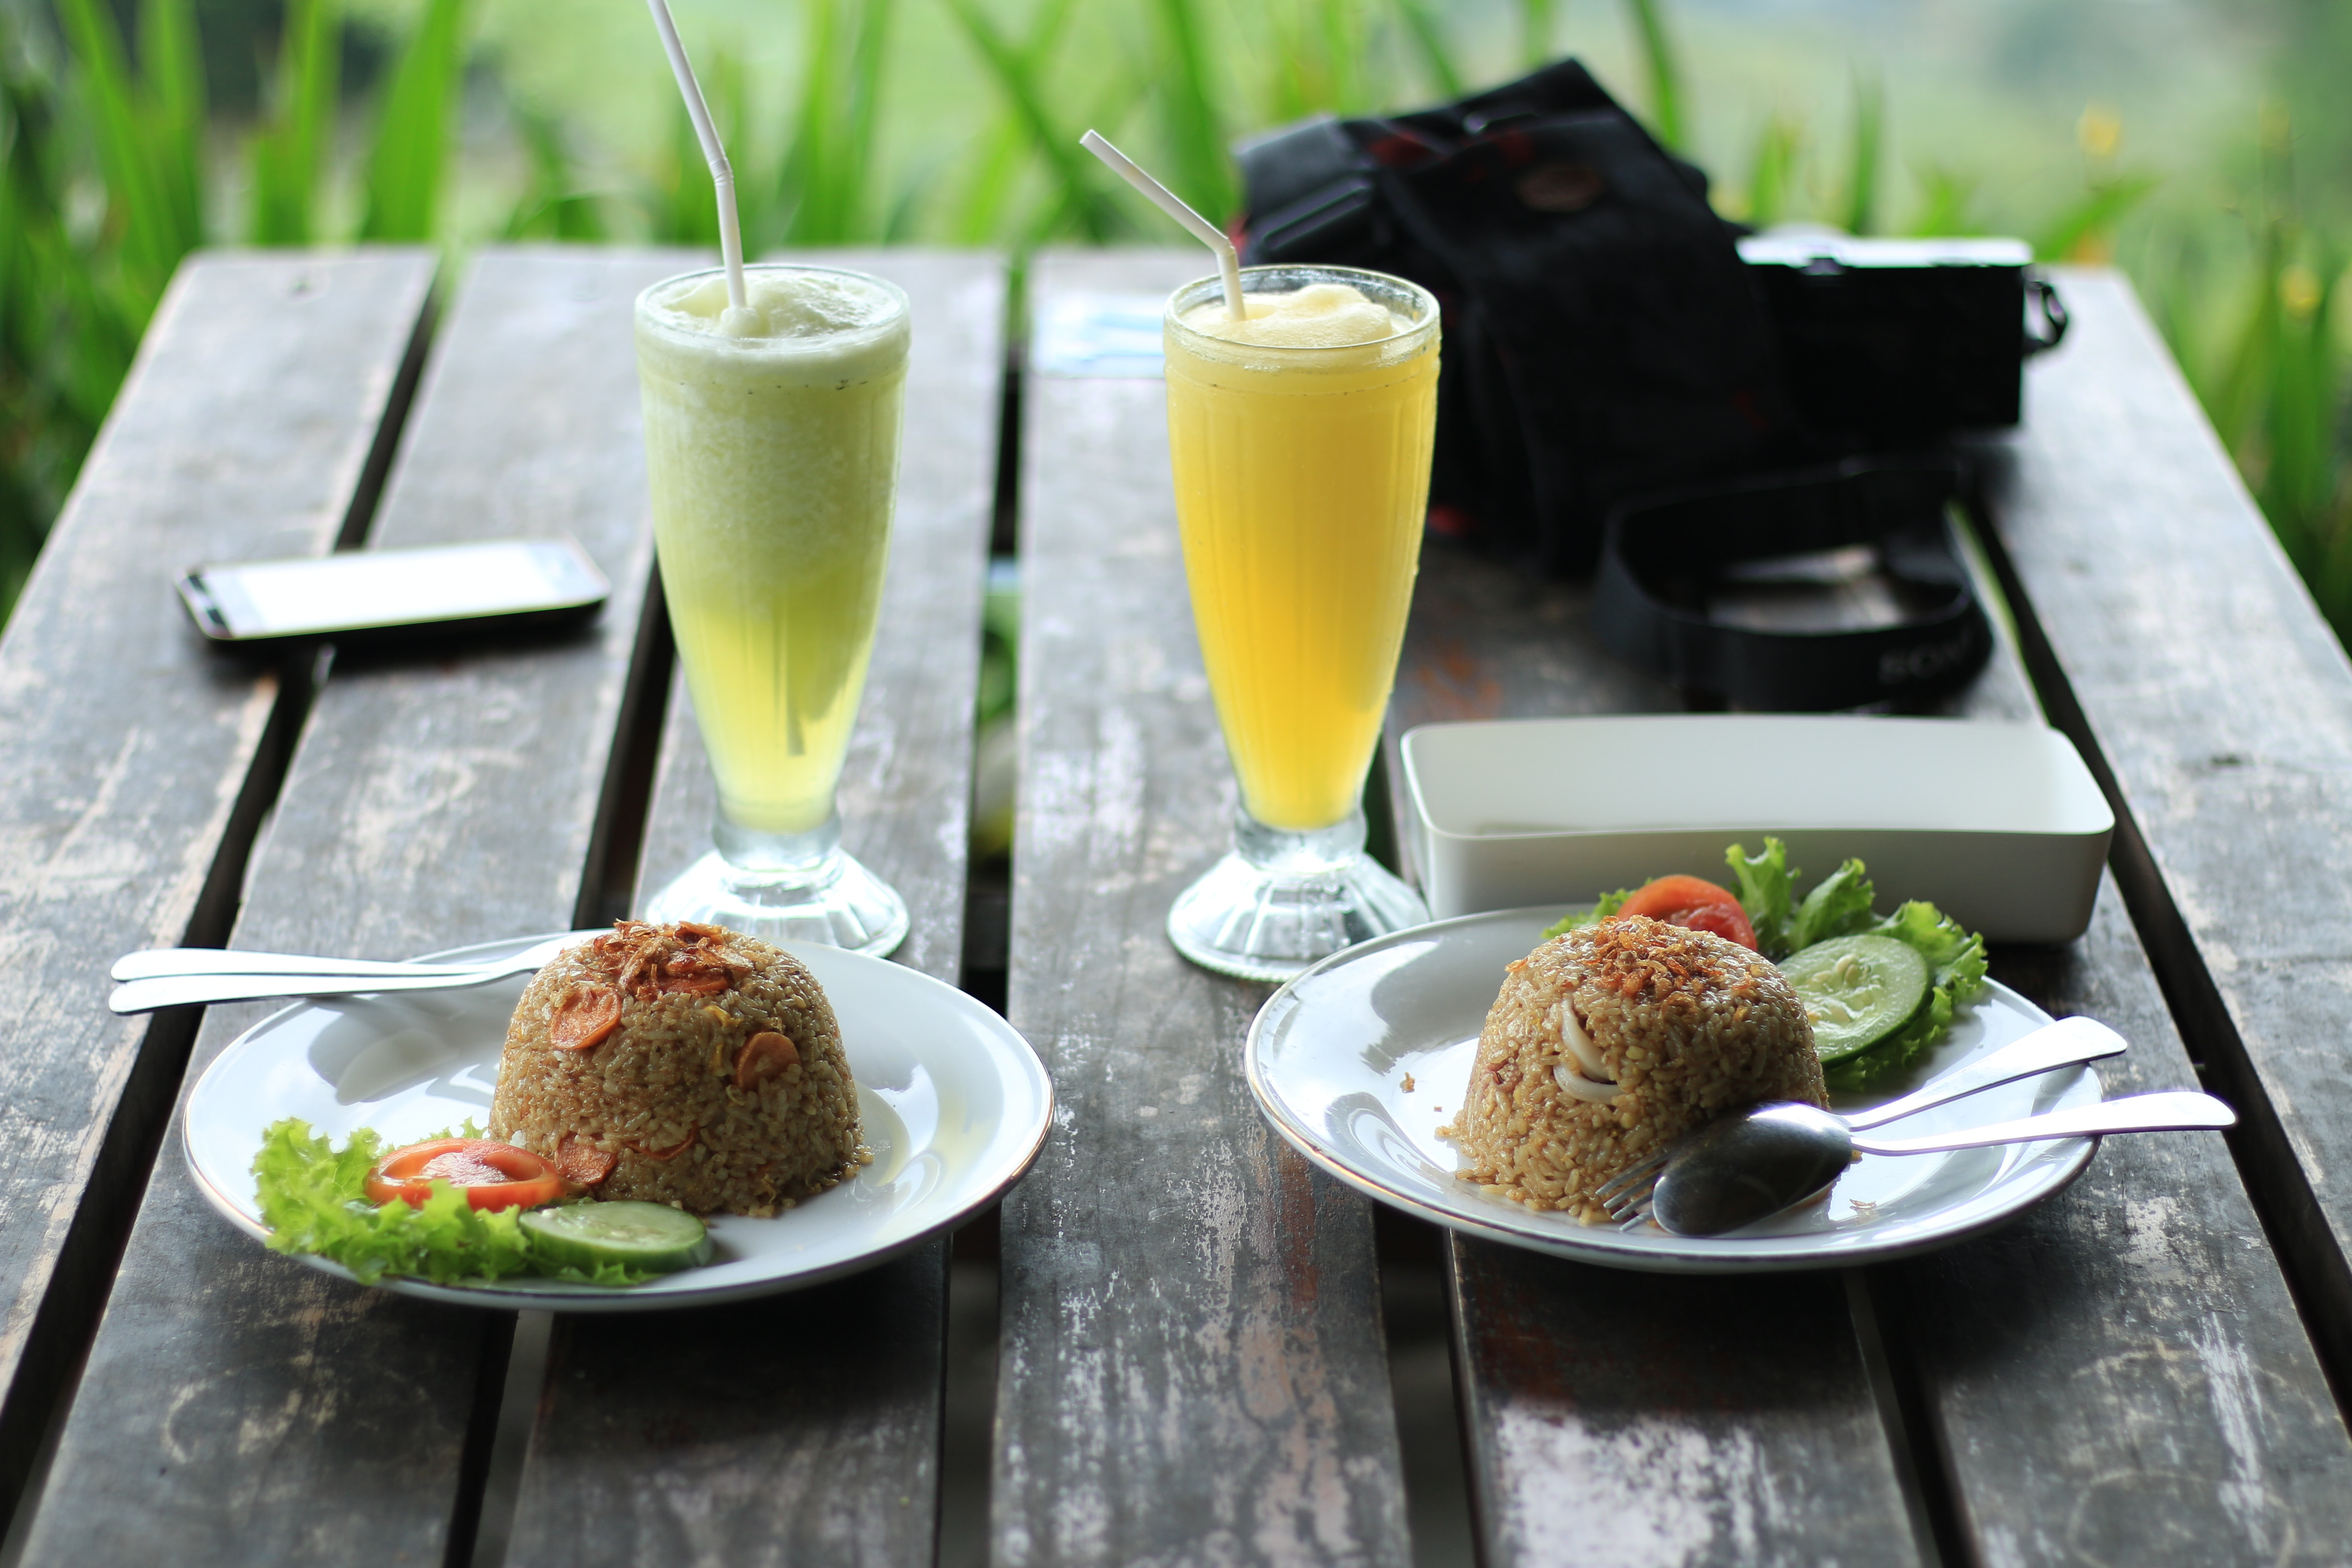 fried rice and glass of juices on table